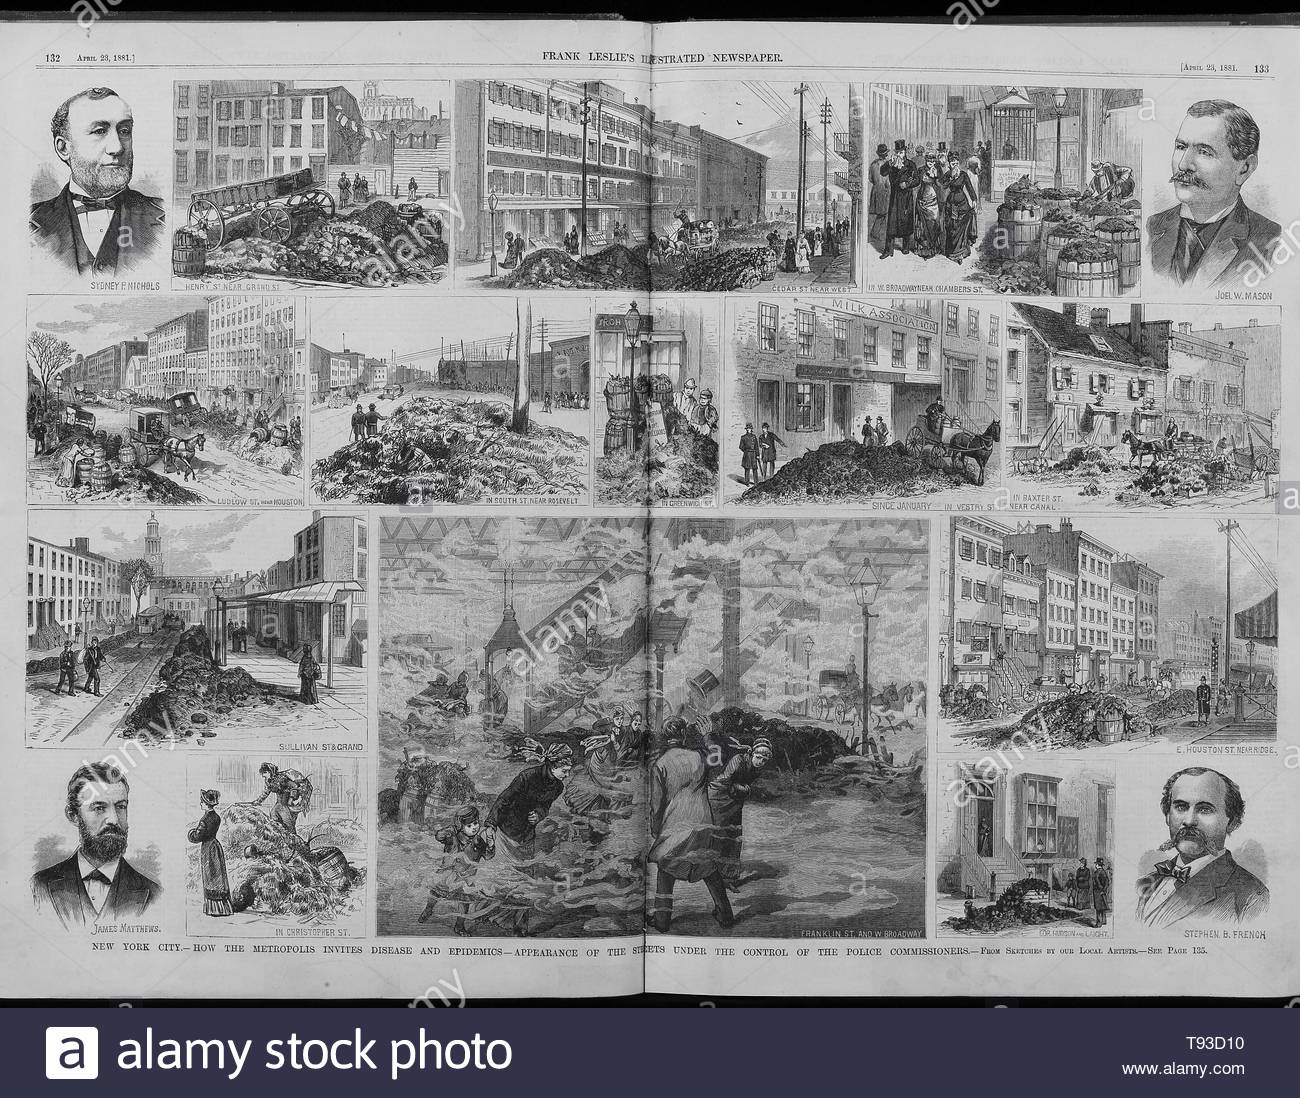 Anonymous-How the Metropolis Invites Disease and Epidemics - Appearance of the Streets under the Control of the Police Commissioners  From sketches by Local Artists - Stock Image